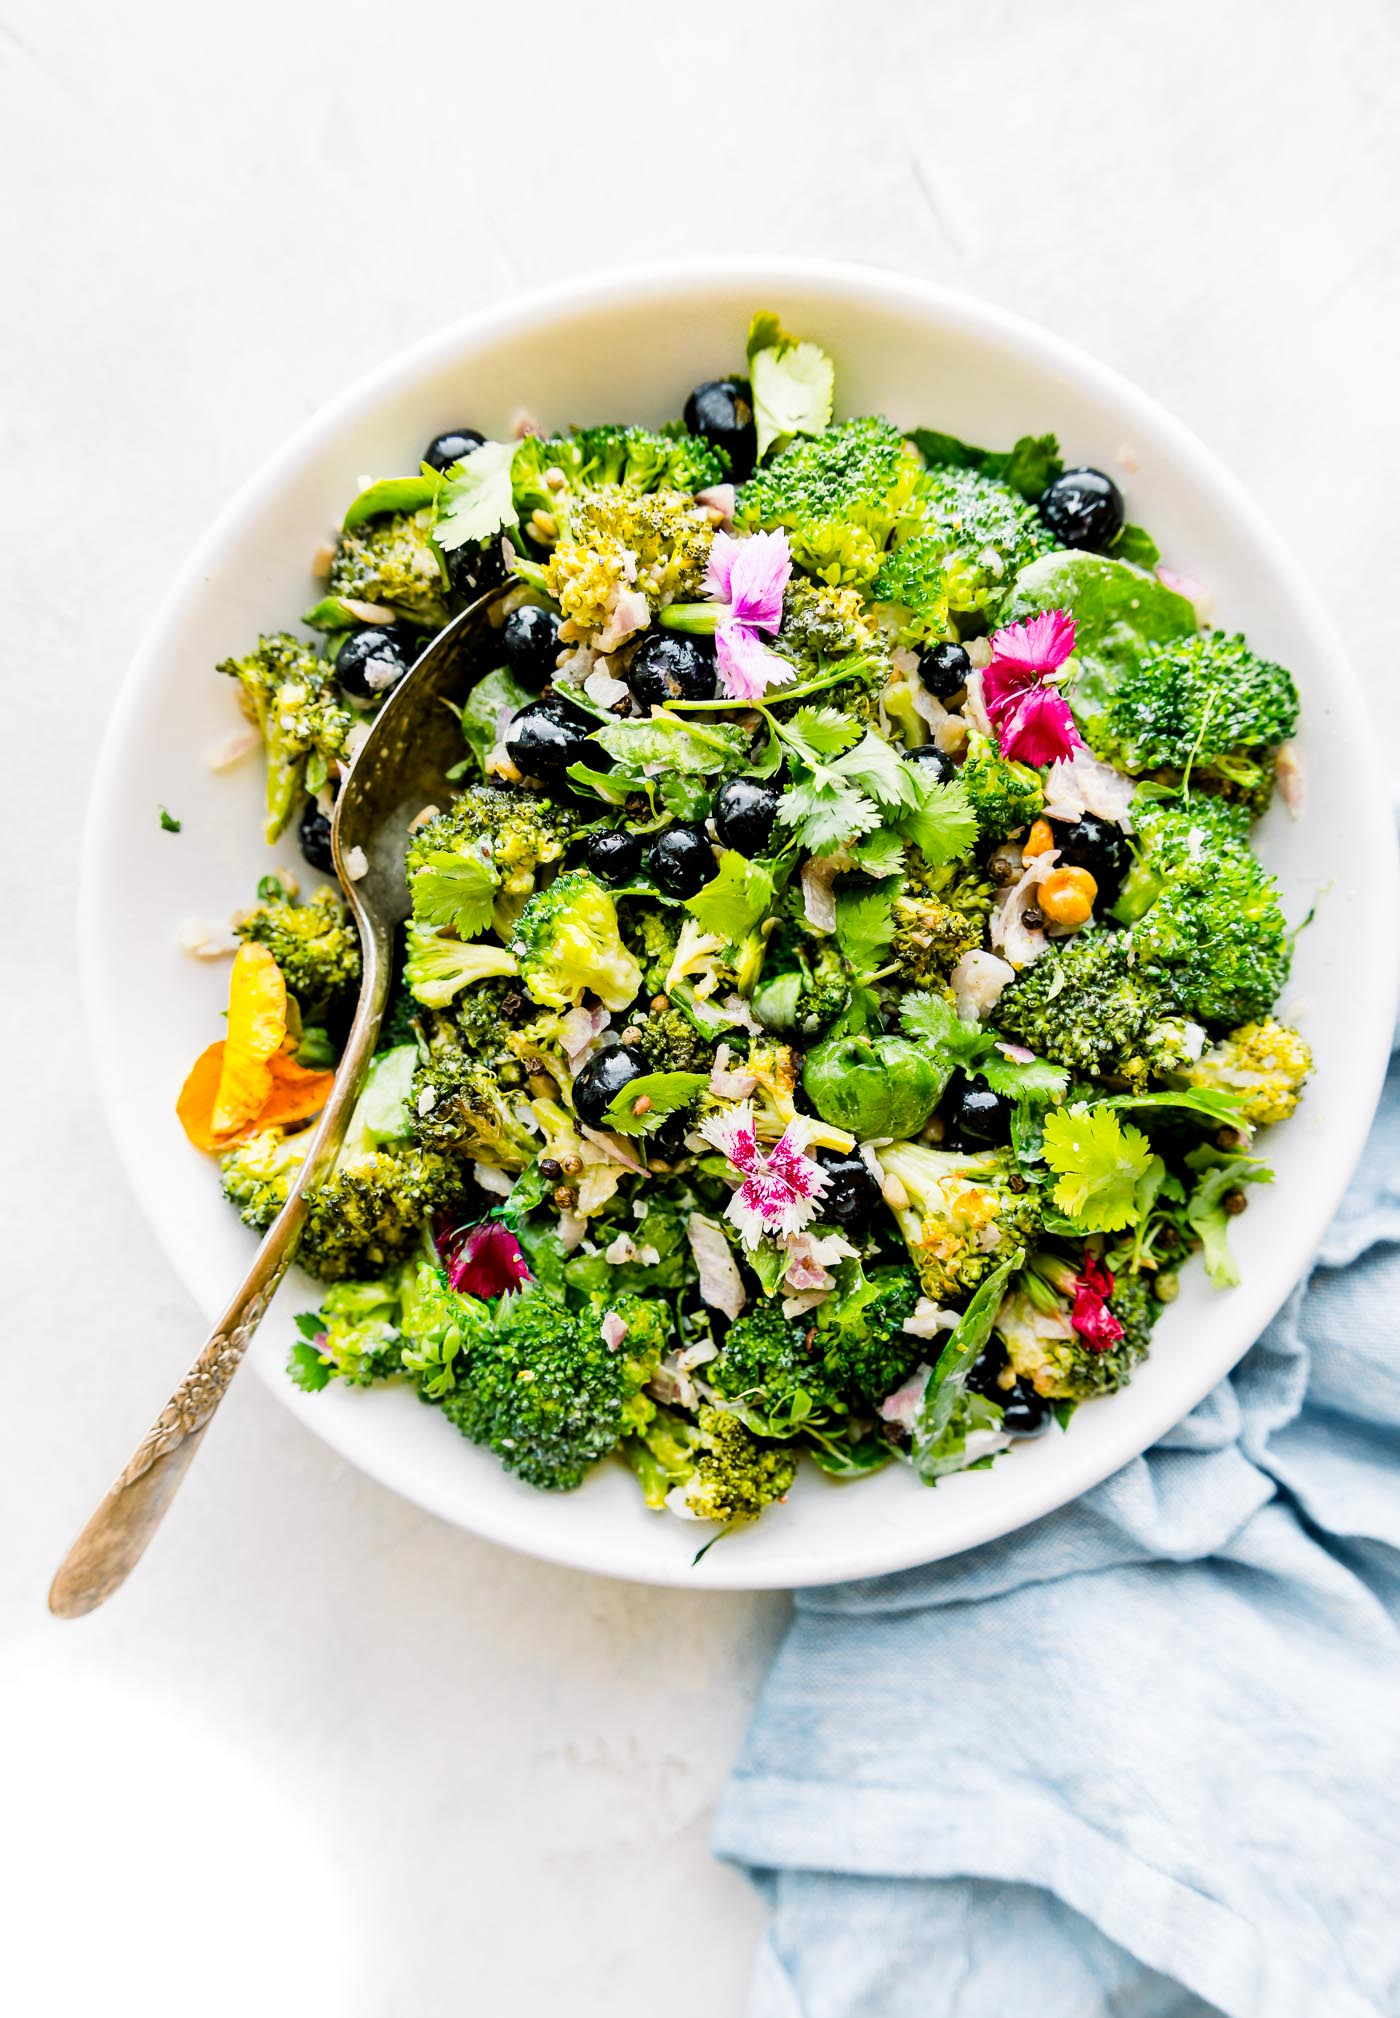 detoxifying broccoli salad recipe photo